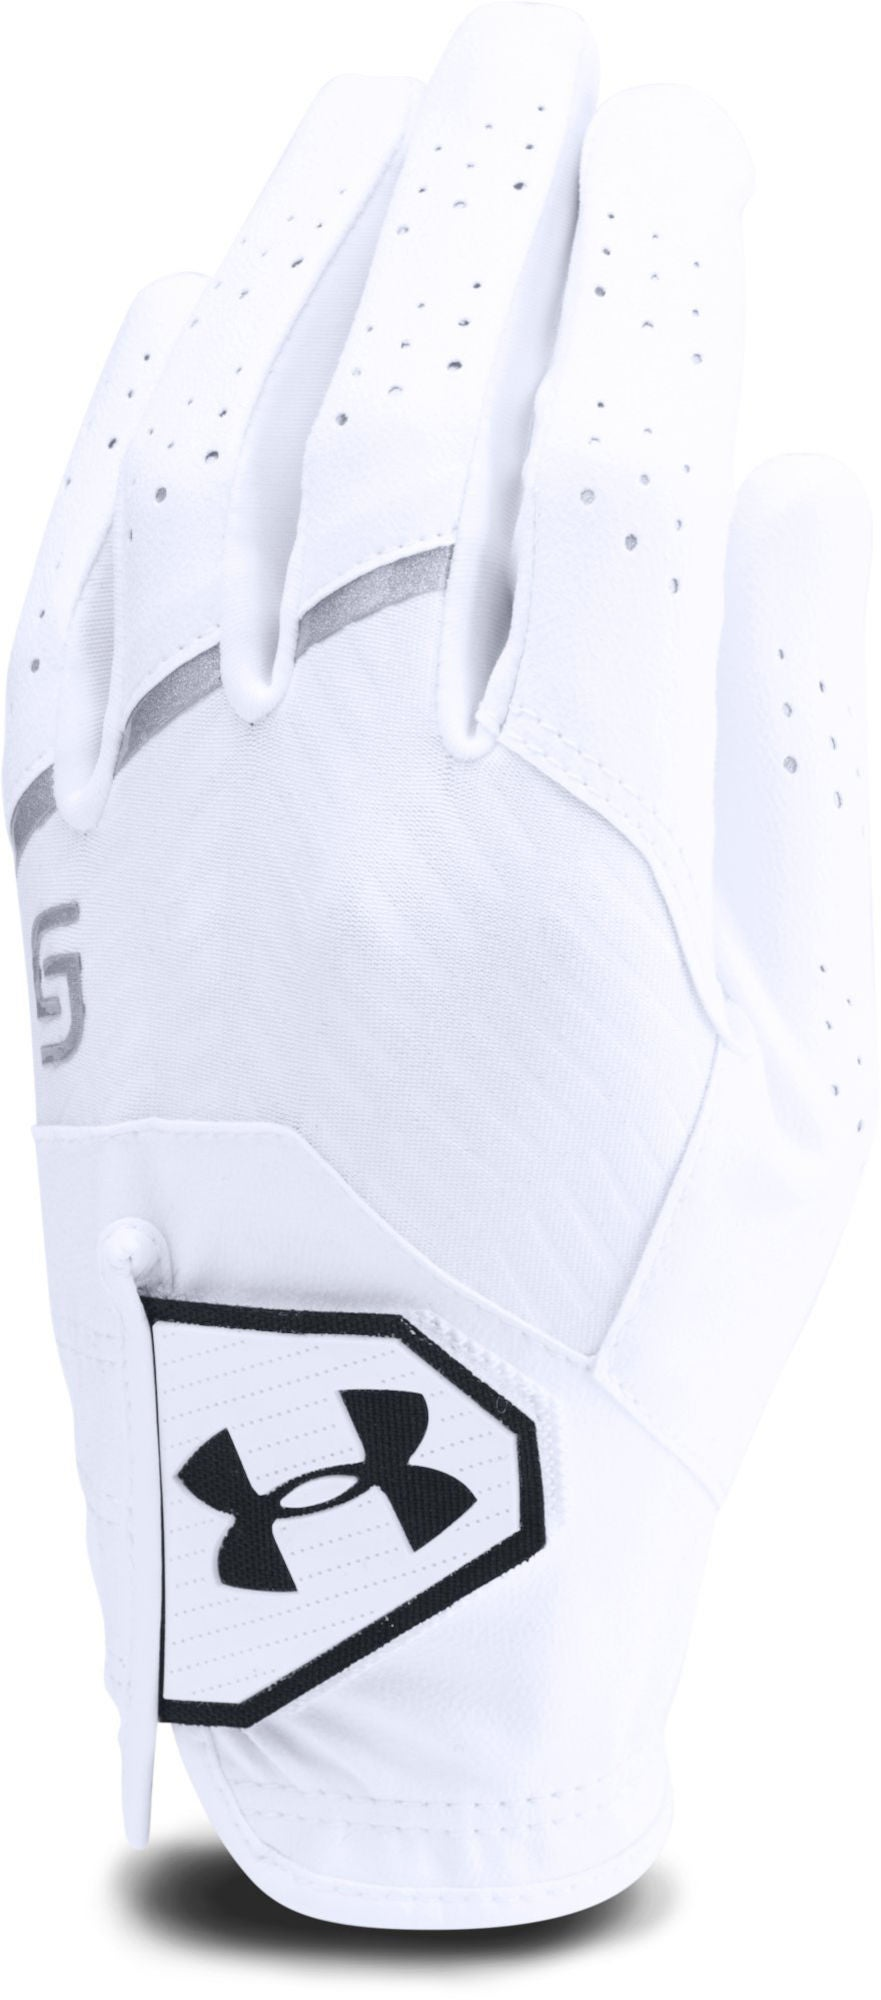 Under Armour Youth Coolswitch Golfhandske Vänster, White S